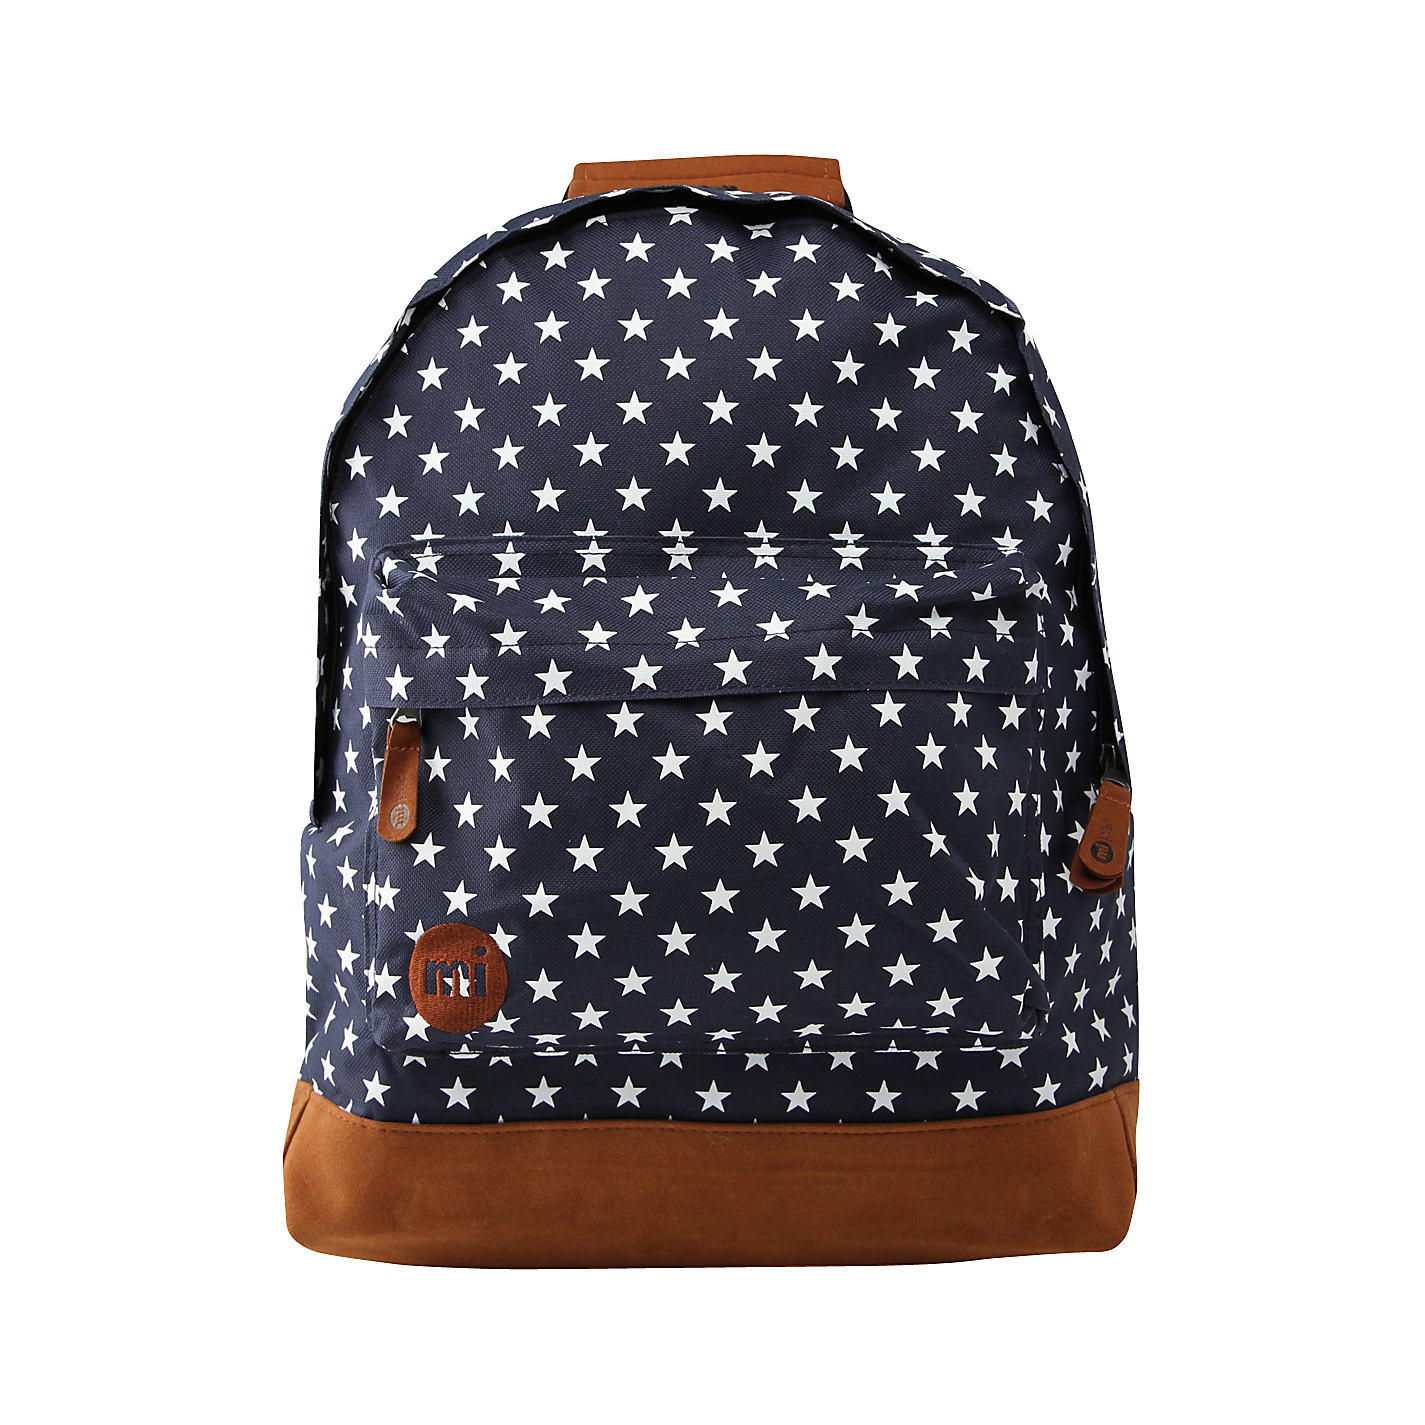 backpacks for secondary school backpack tools